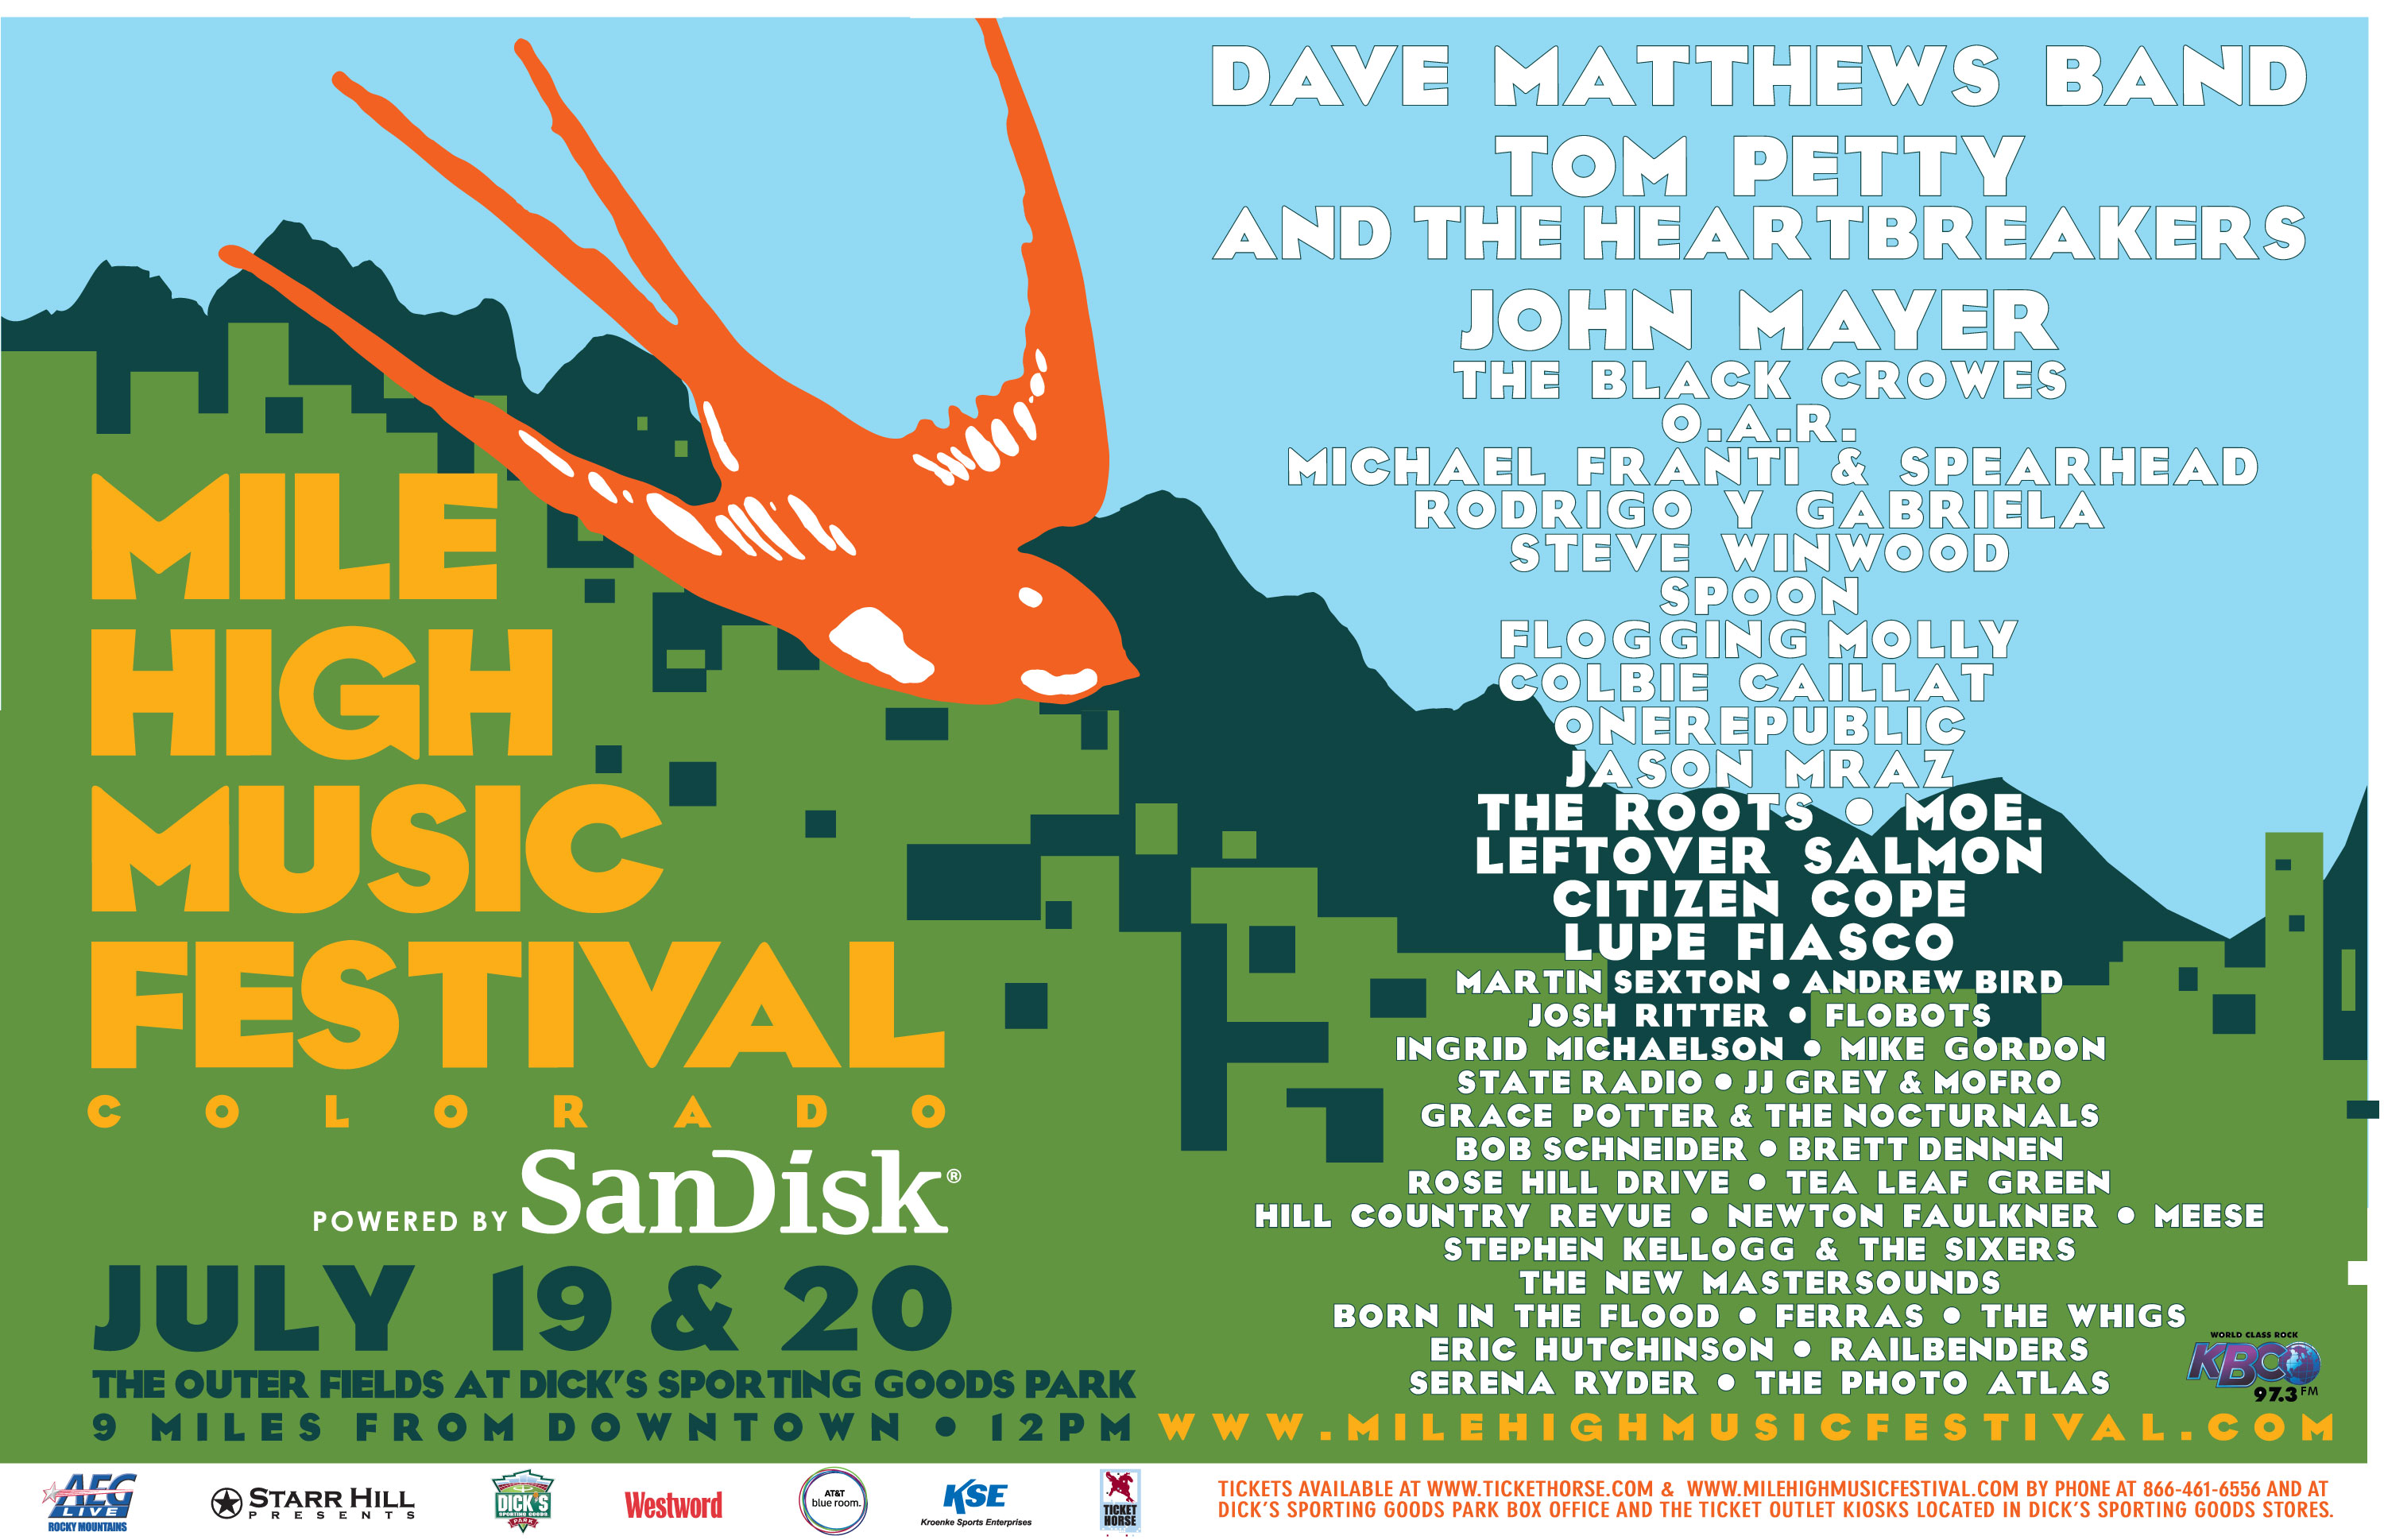 Mile High Music Festival Poster